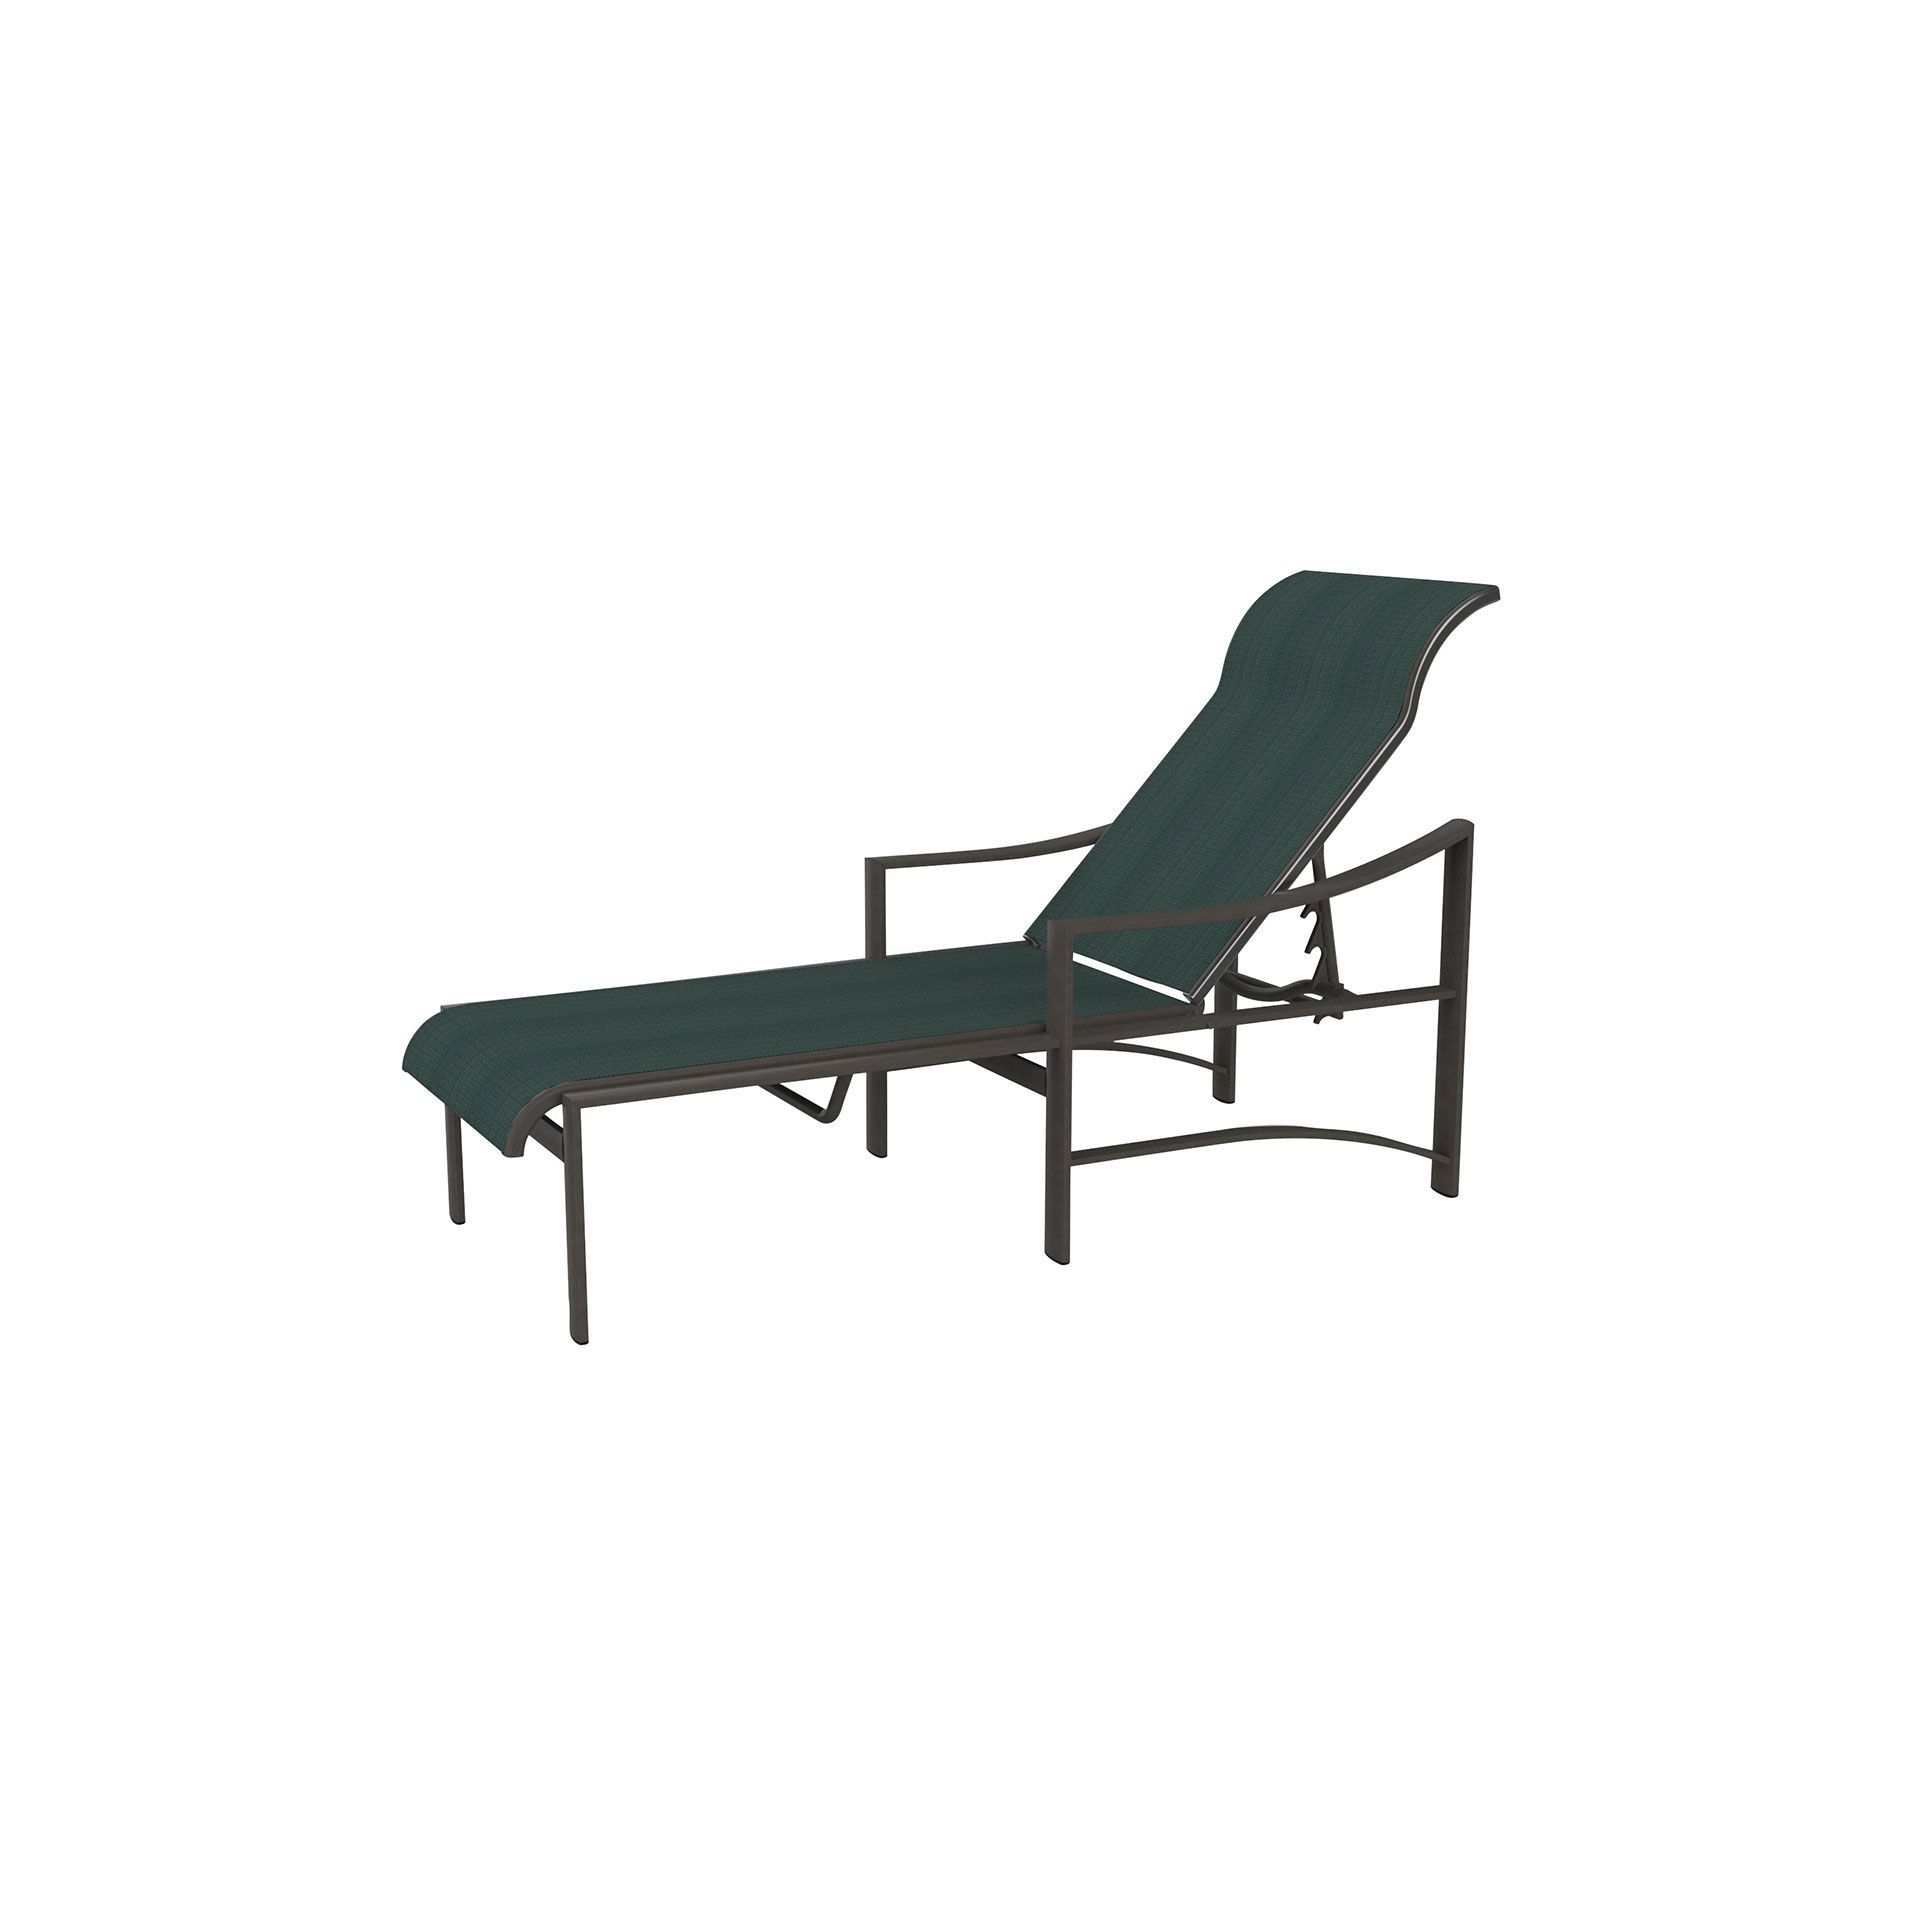 Tropitone Chaise Lounges With Well Known Tropitone Kenzo Sling Chaise Lounge – Leisure Living (View 8 of 15)